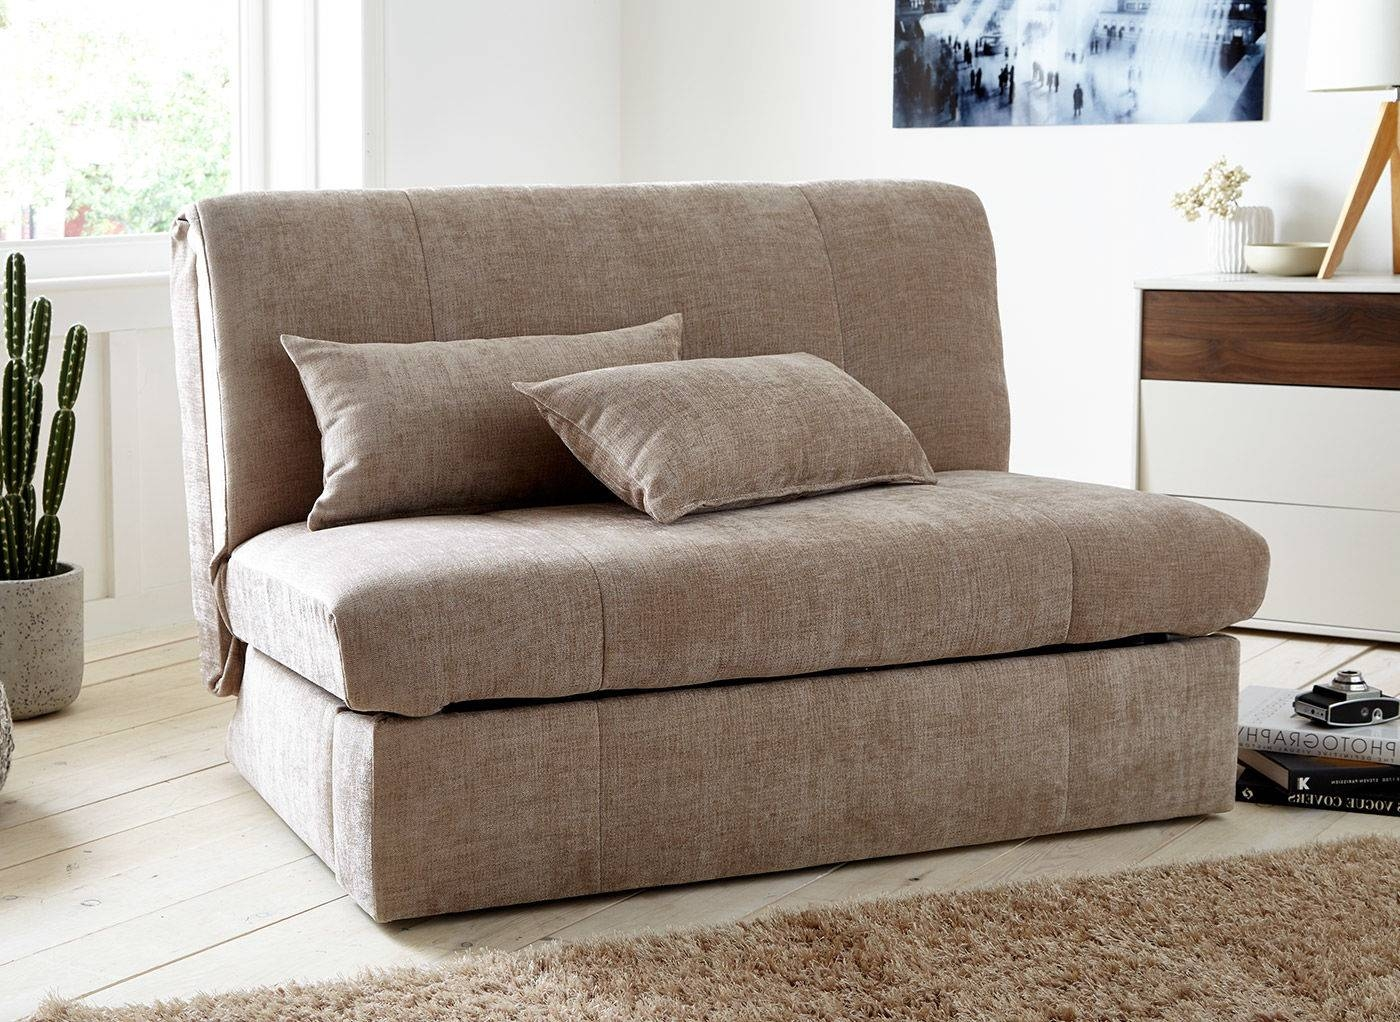 Sofas Center : Imposing Office Sofa Picture Concept For Officesofa for Luxury Sofa Beds (Image 18 of 30)